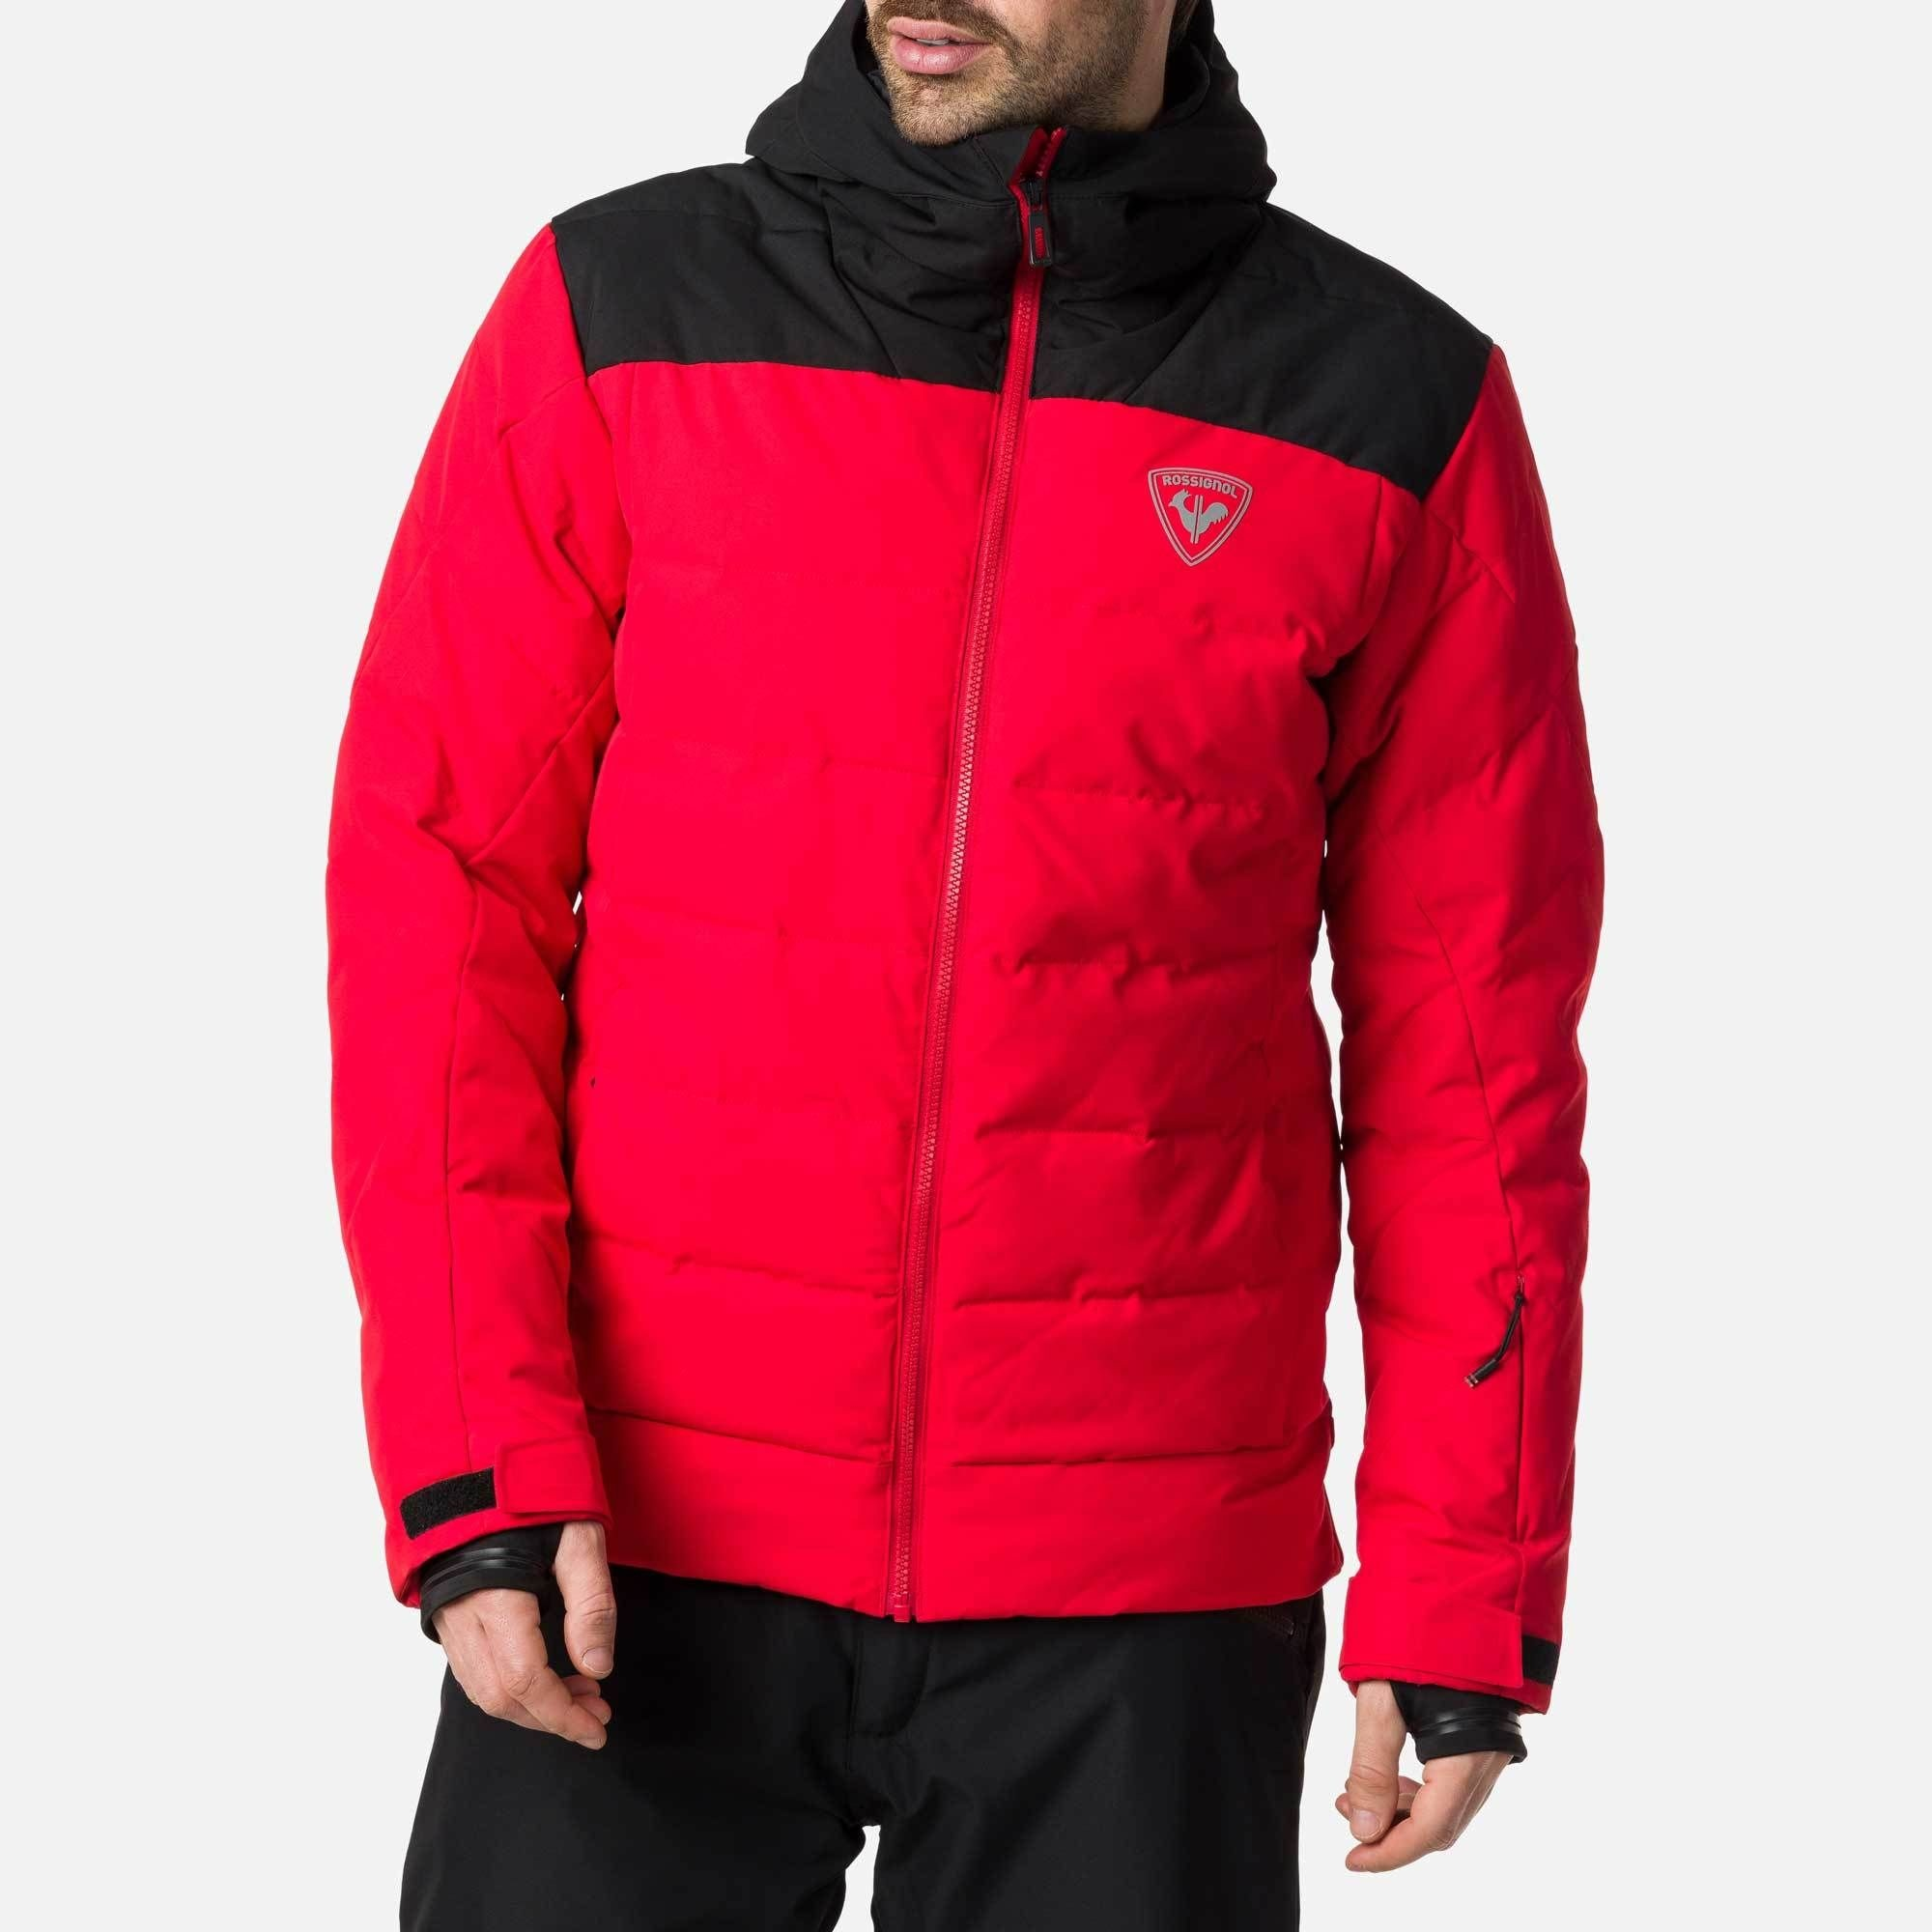 ROSSIGNOL CANADA Rapide Jacket, Sports Red